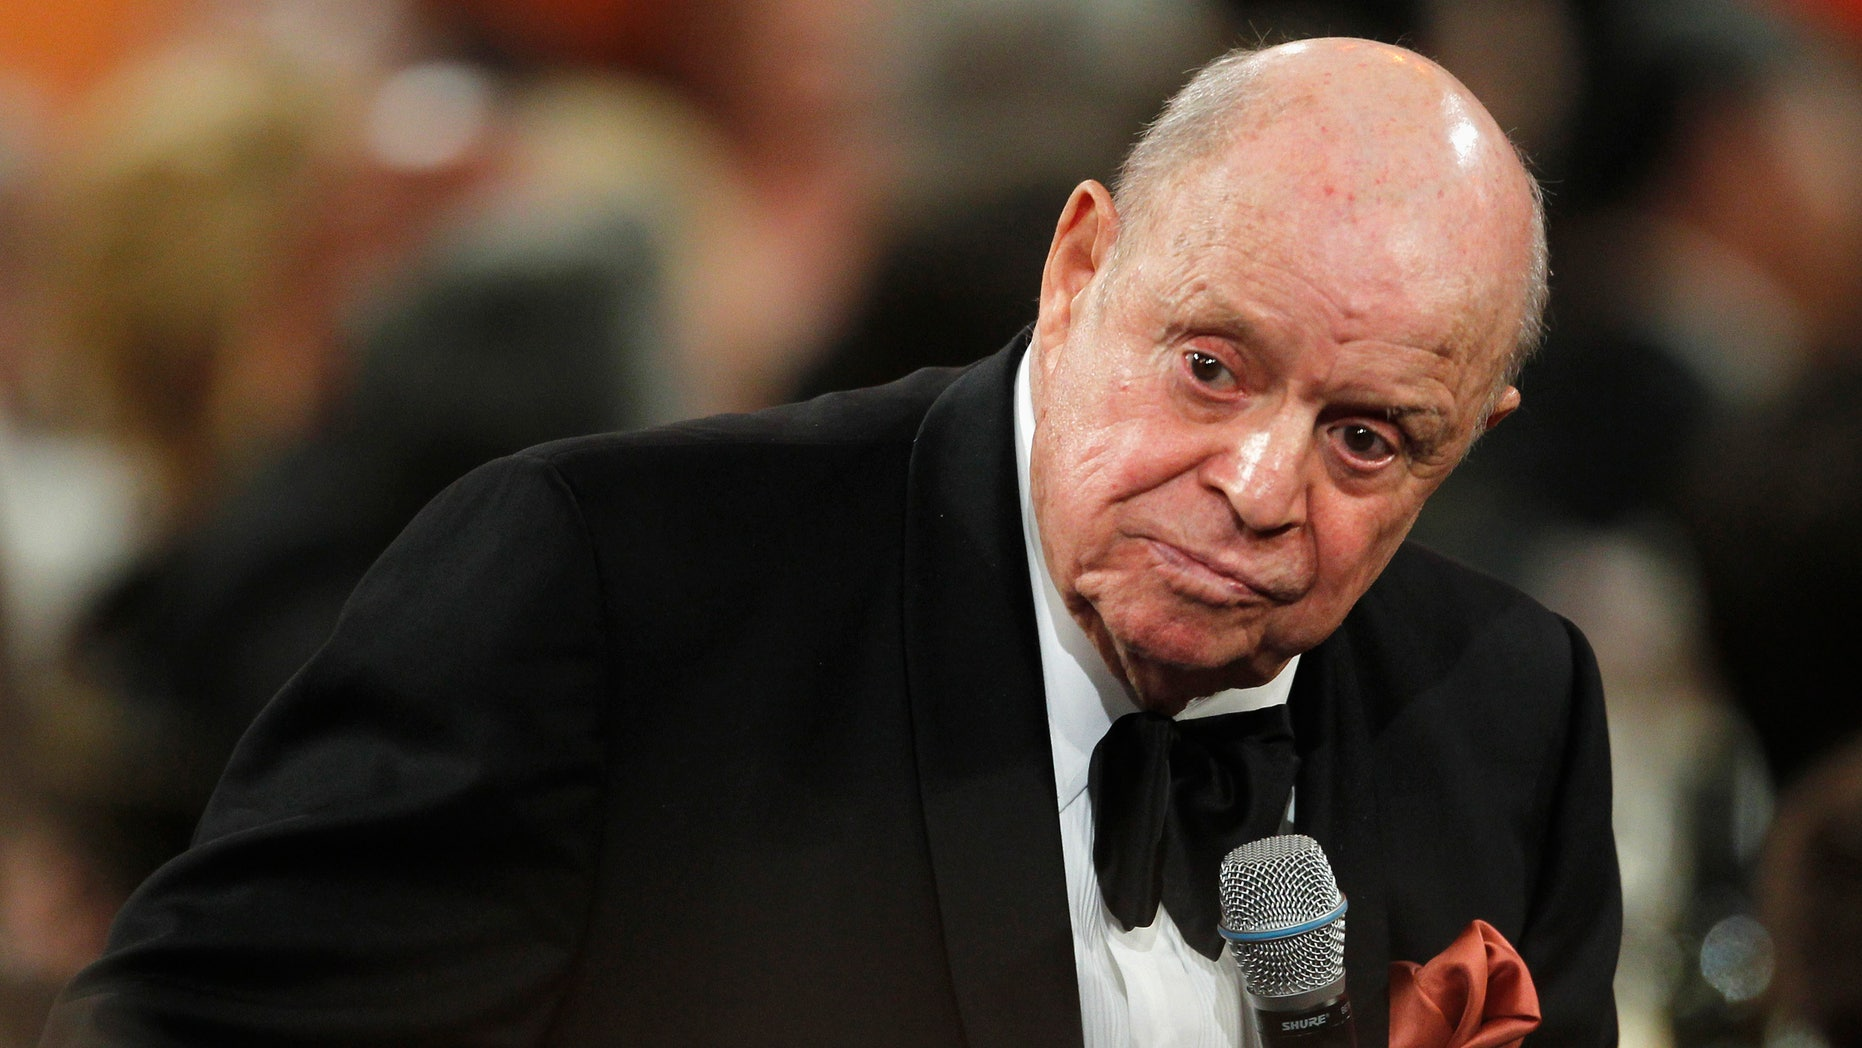 June 7, 2012. Comedian Don Rickles speaks in tribute at the TV Land cable channel taping of the AFI Life Achievement Award honoring actress Shirley MacLaine in Los Angeles.